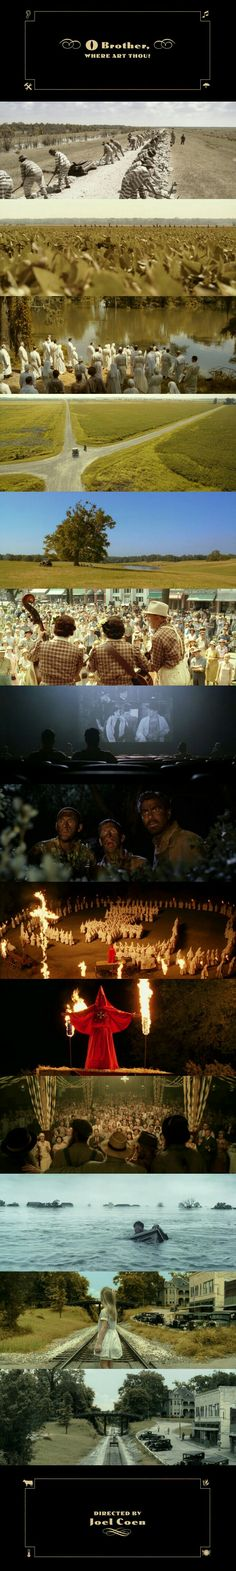 O Brother, Where Art Thou? (2002) Written and Directed by Coen Brothers. Cinematography by Roger Deakins.